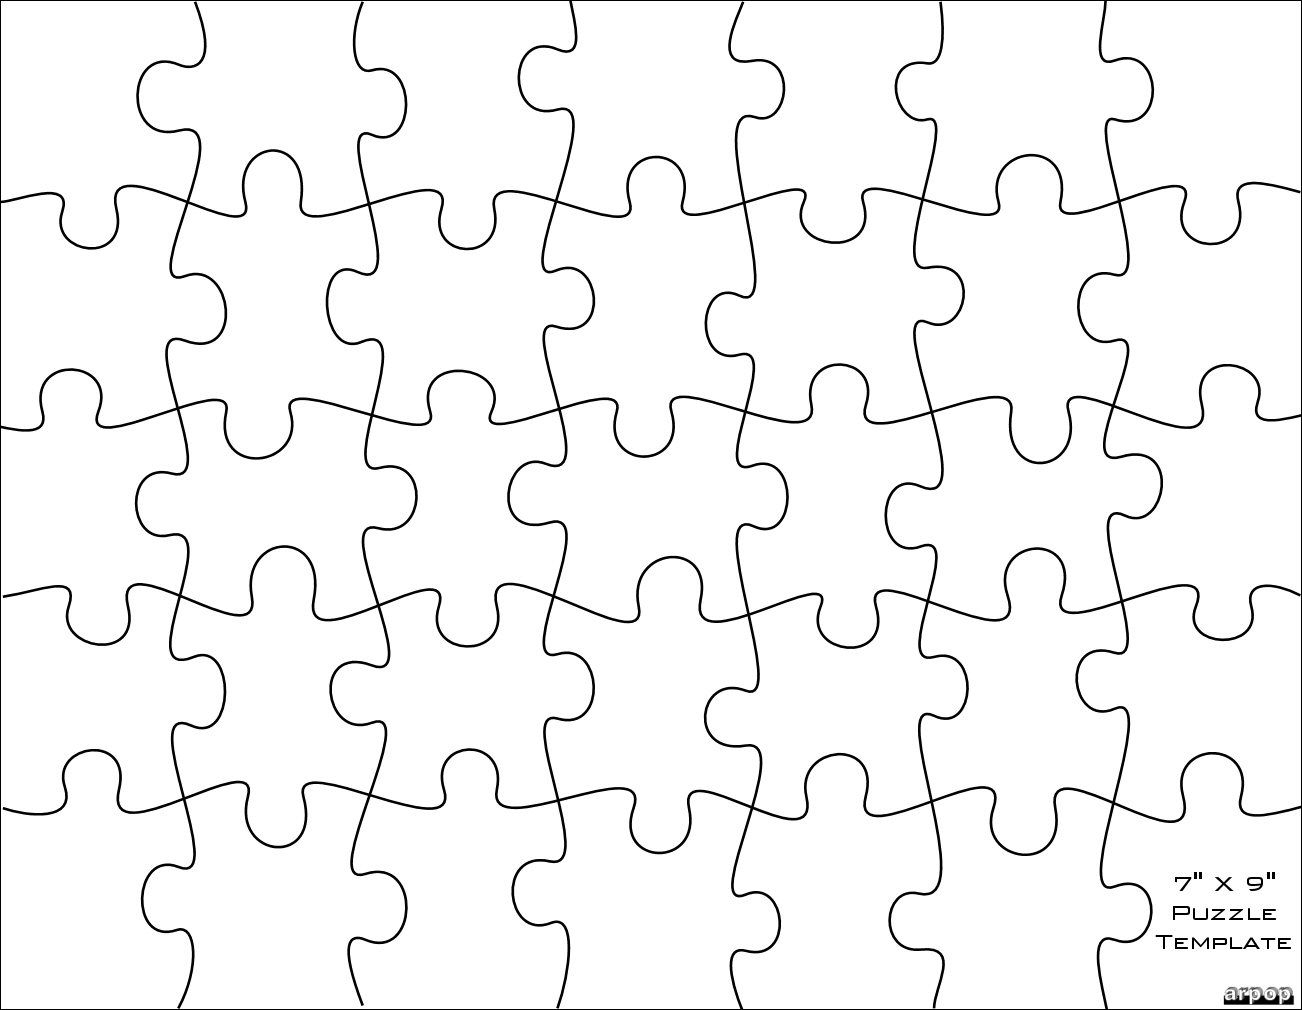 Free Scroll Saw Patternsarpop: Jigsaw Puzzle Templates | School - Printable Jigsaw Puzzle For Adults